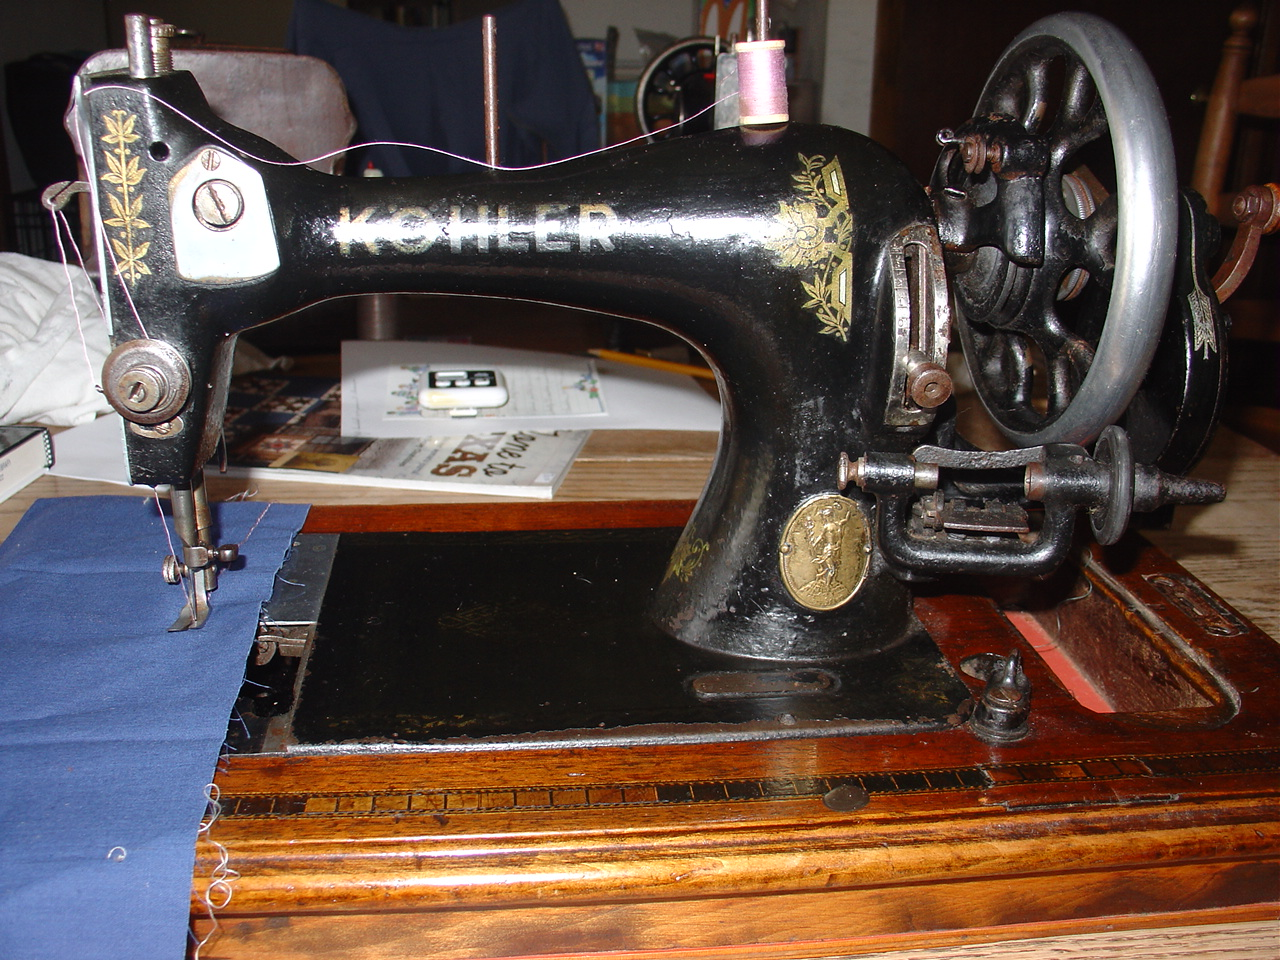 Treadlestitches: Kohler Hand Crank Sewing Machine for Sale